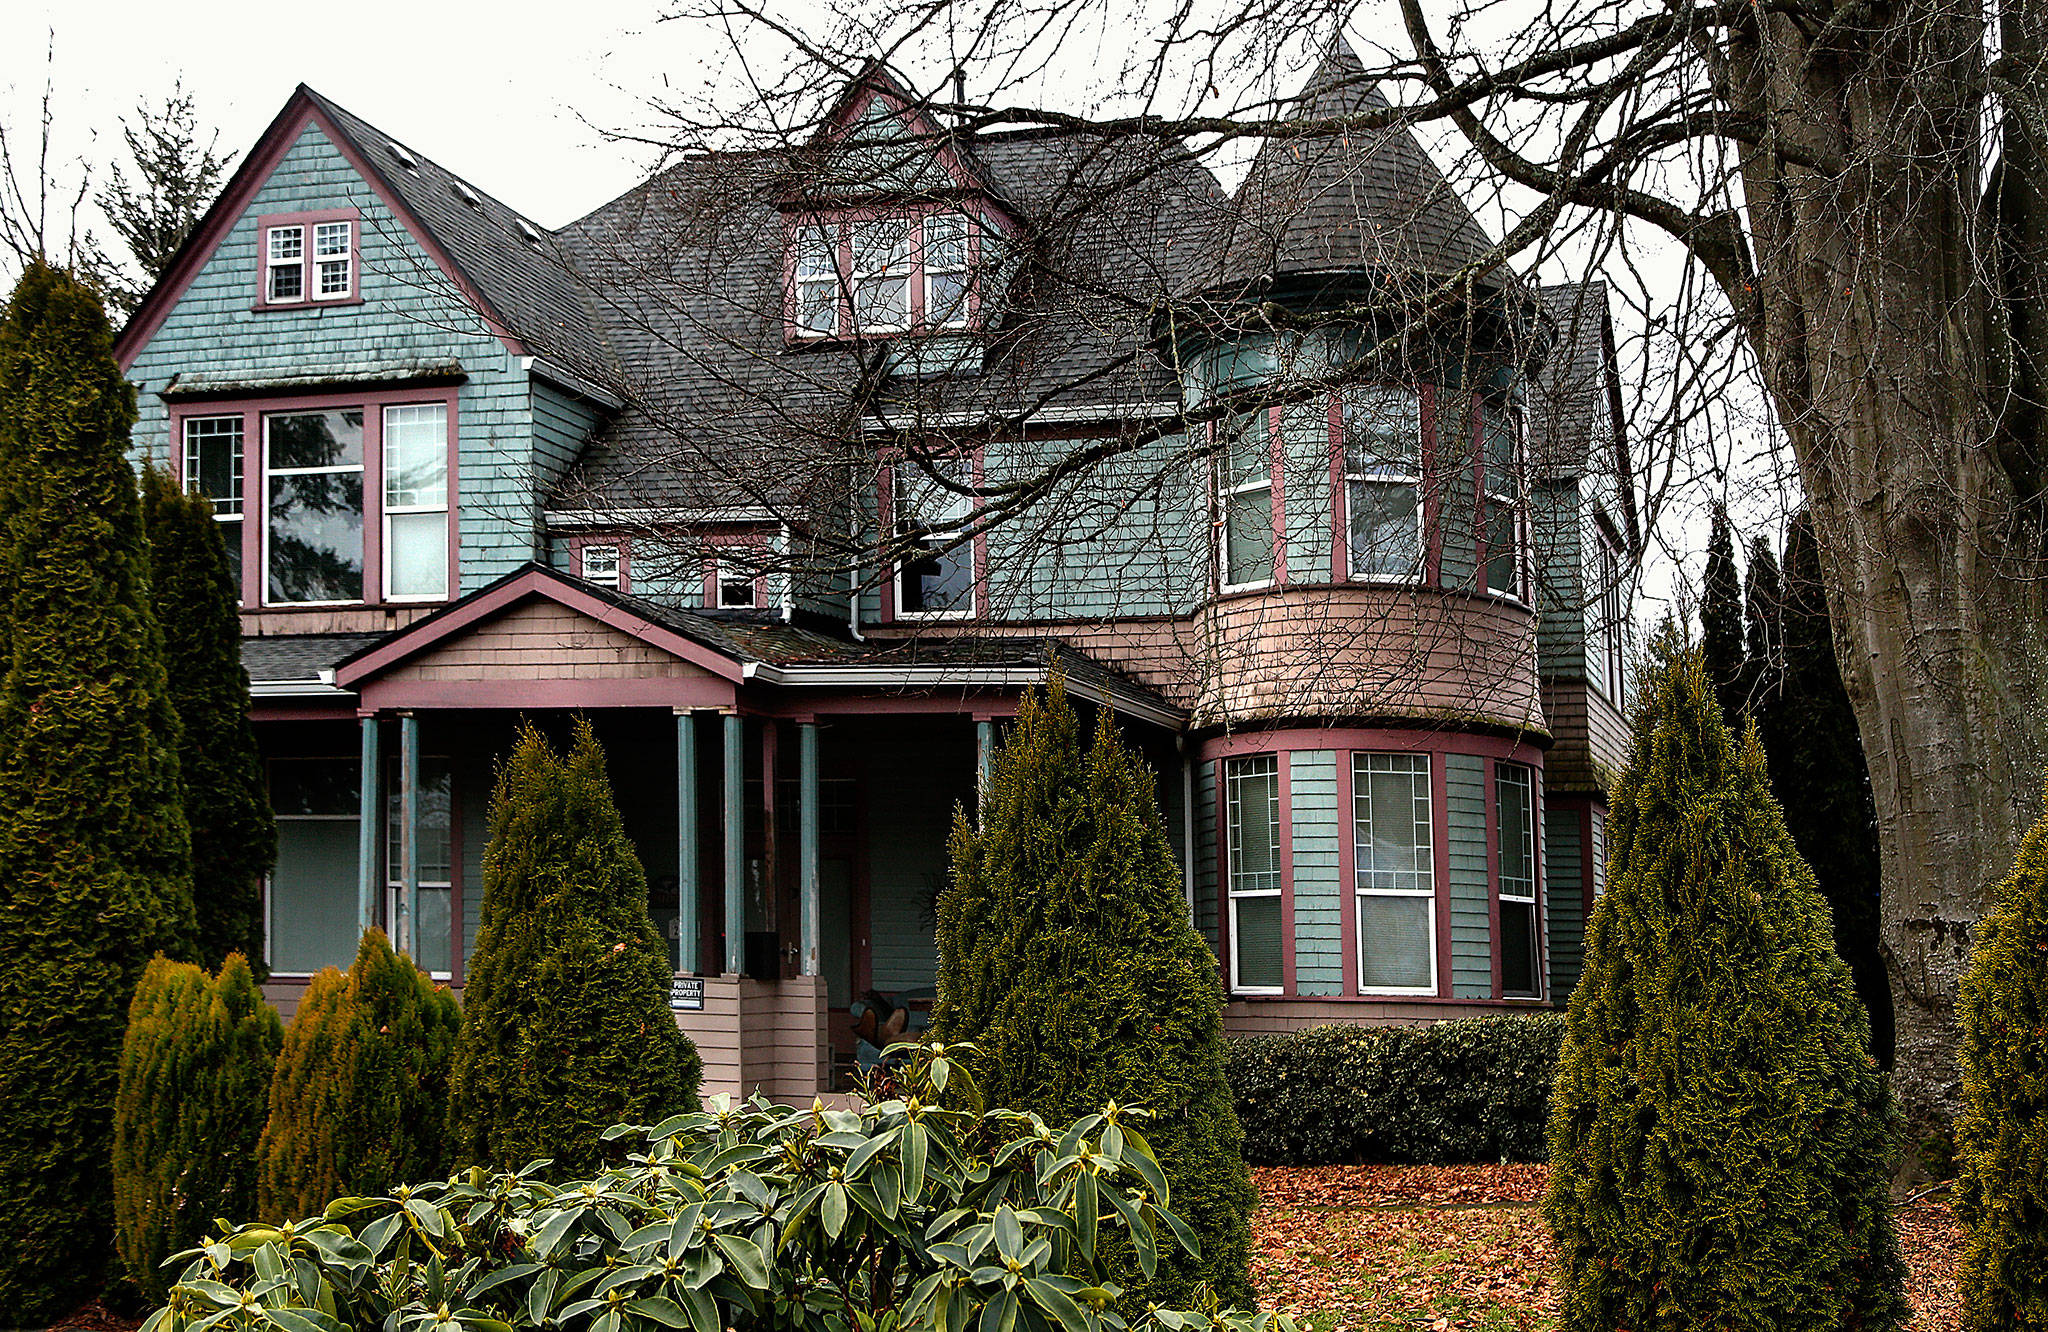 The McManus Mansion, built in 1892, still stands at 2528 East Grand Ave. (Dan Bates / The Herald)